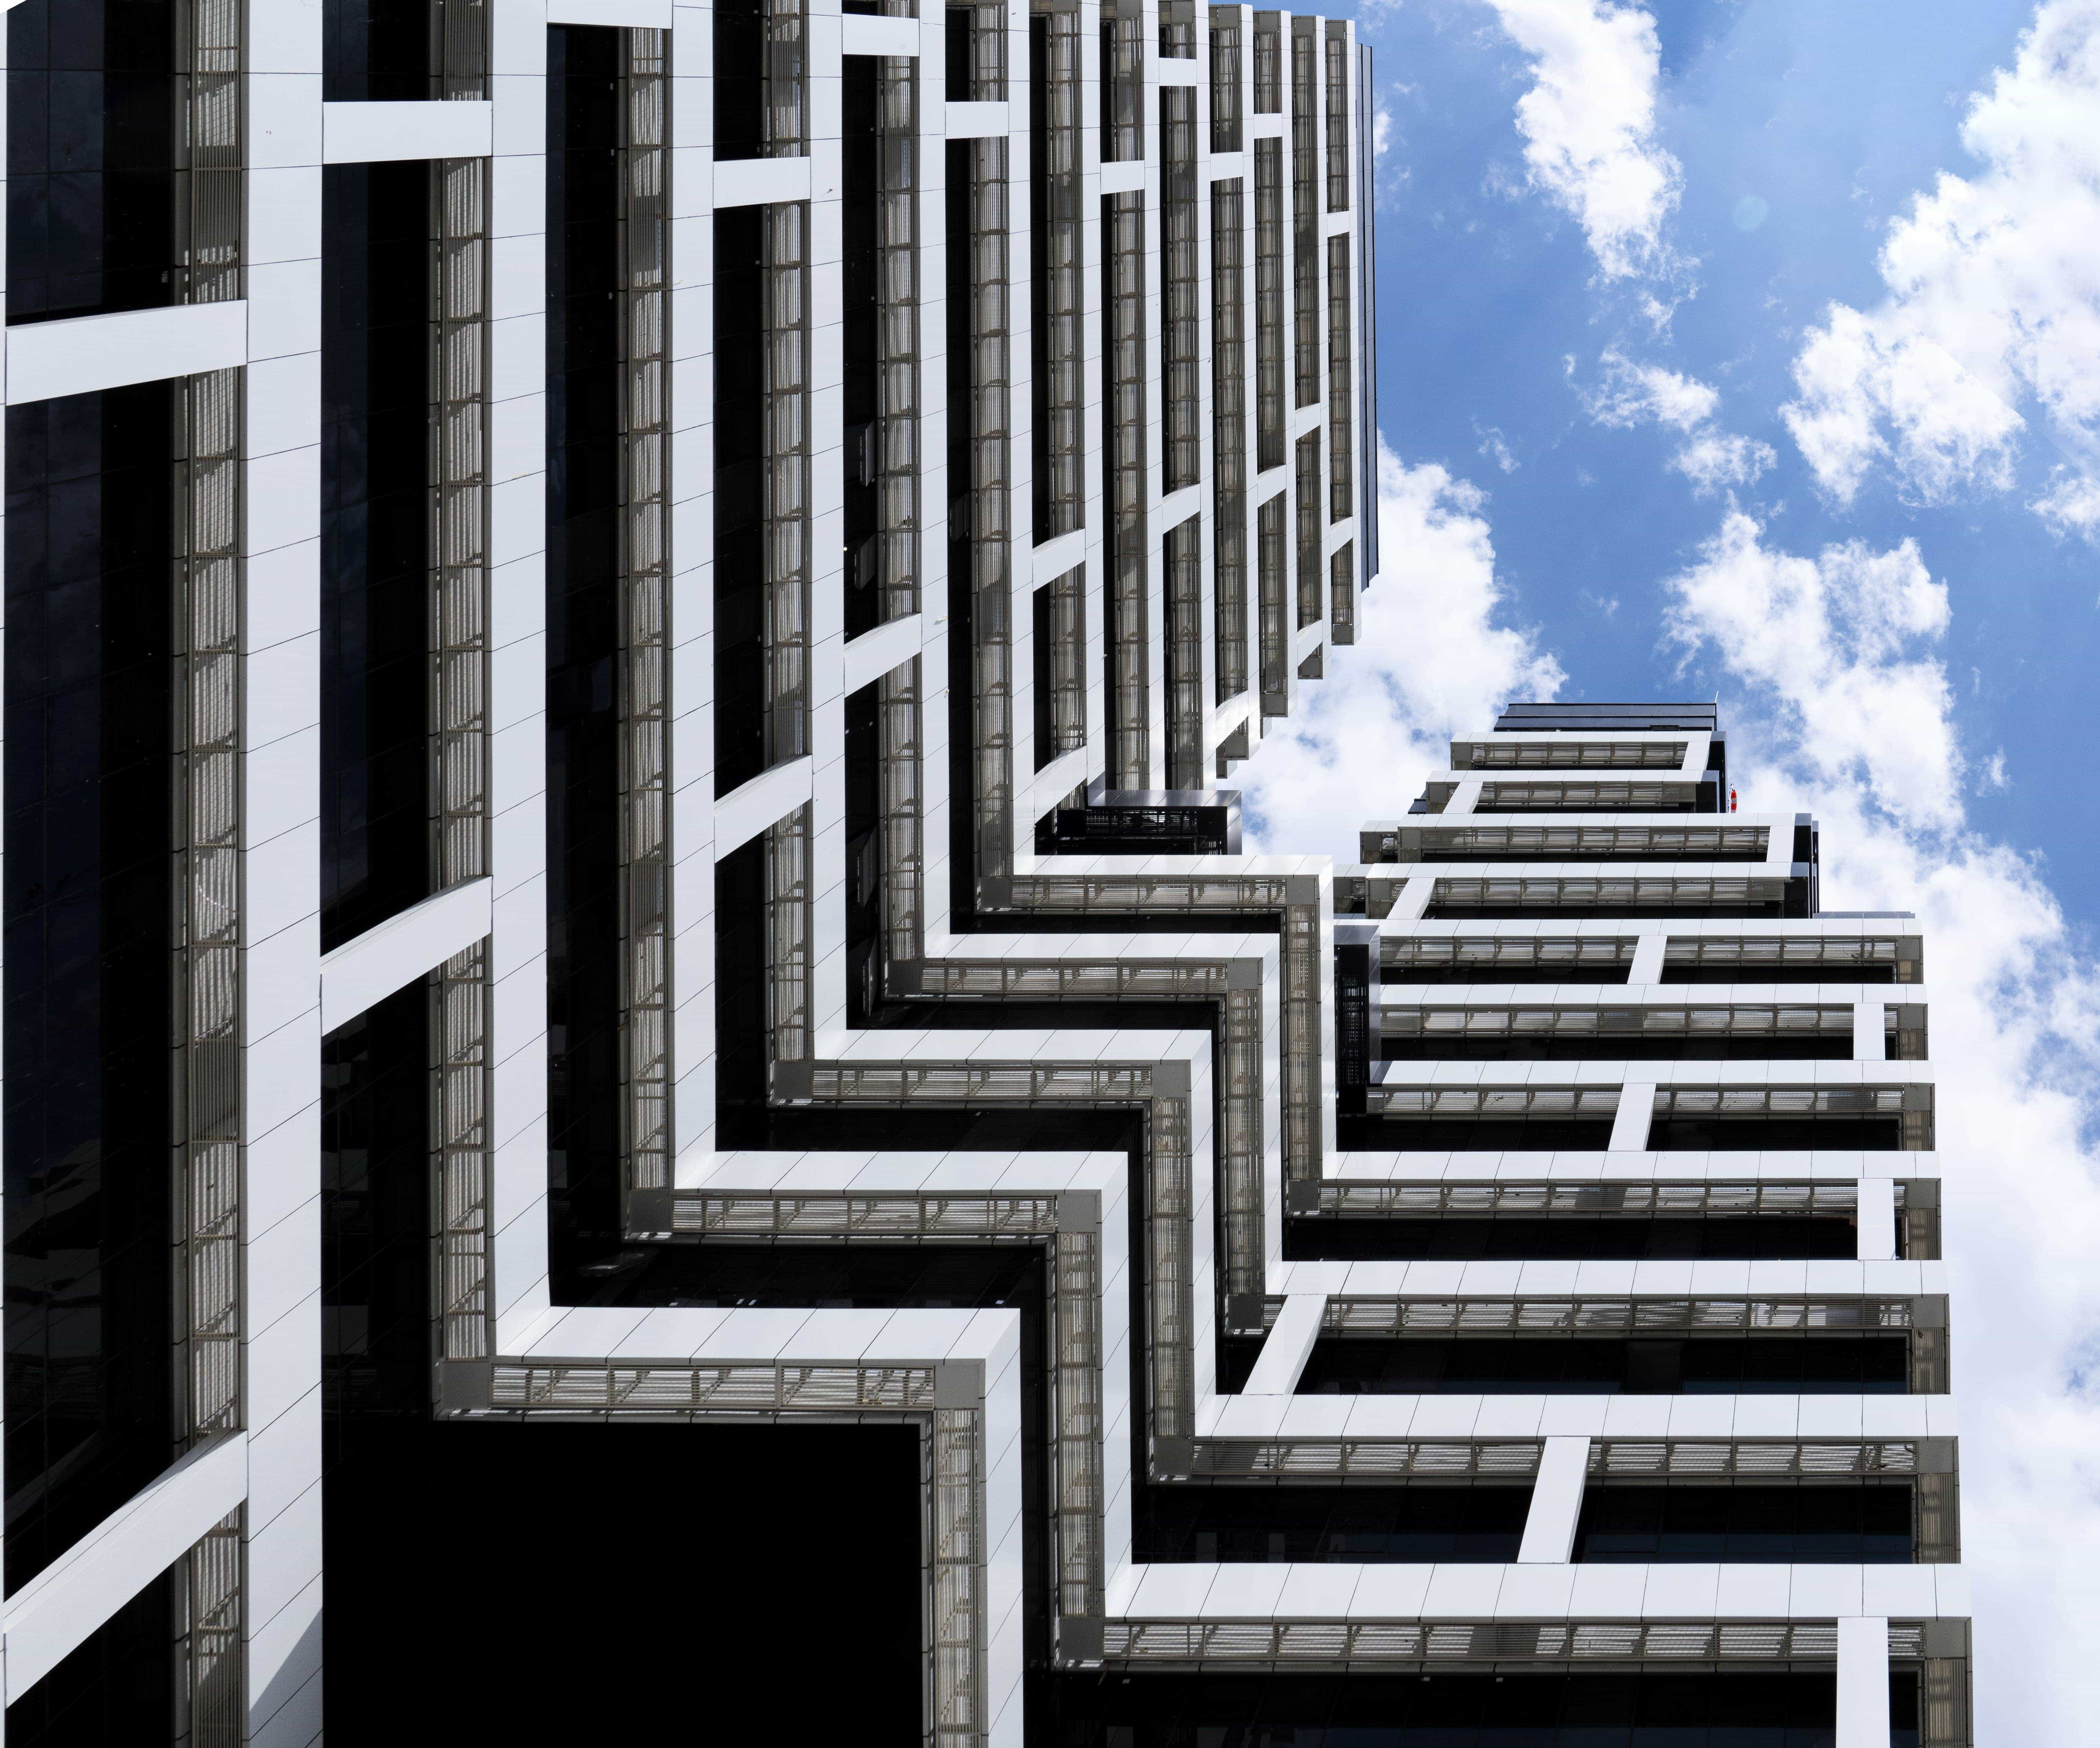 Architectural Photography by Parham Raoufi